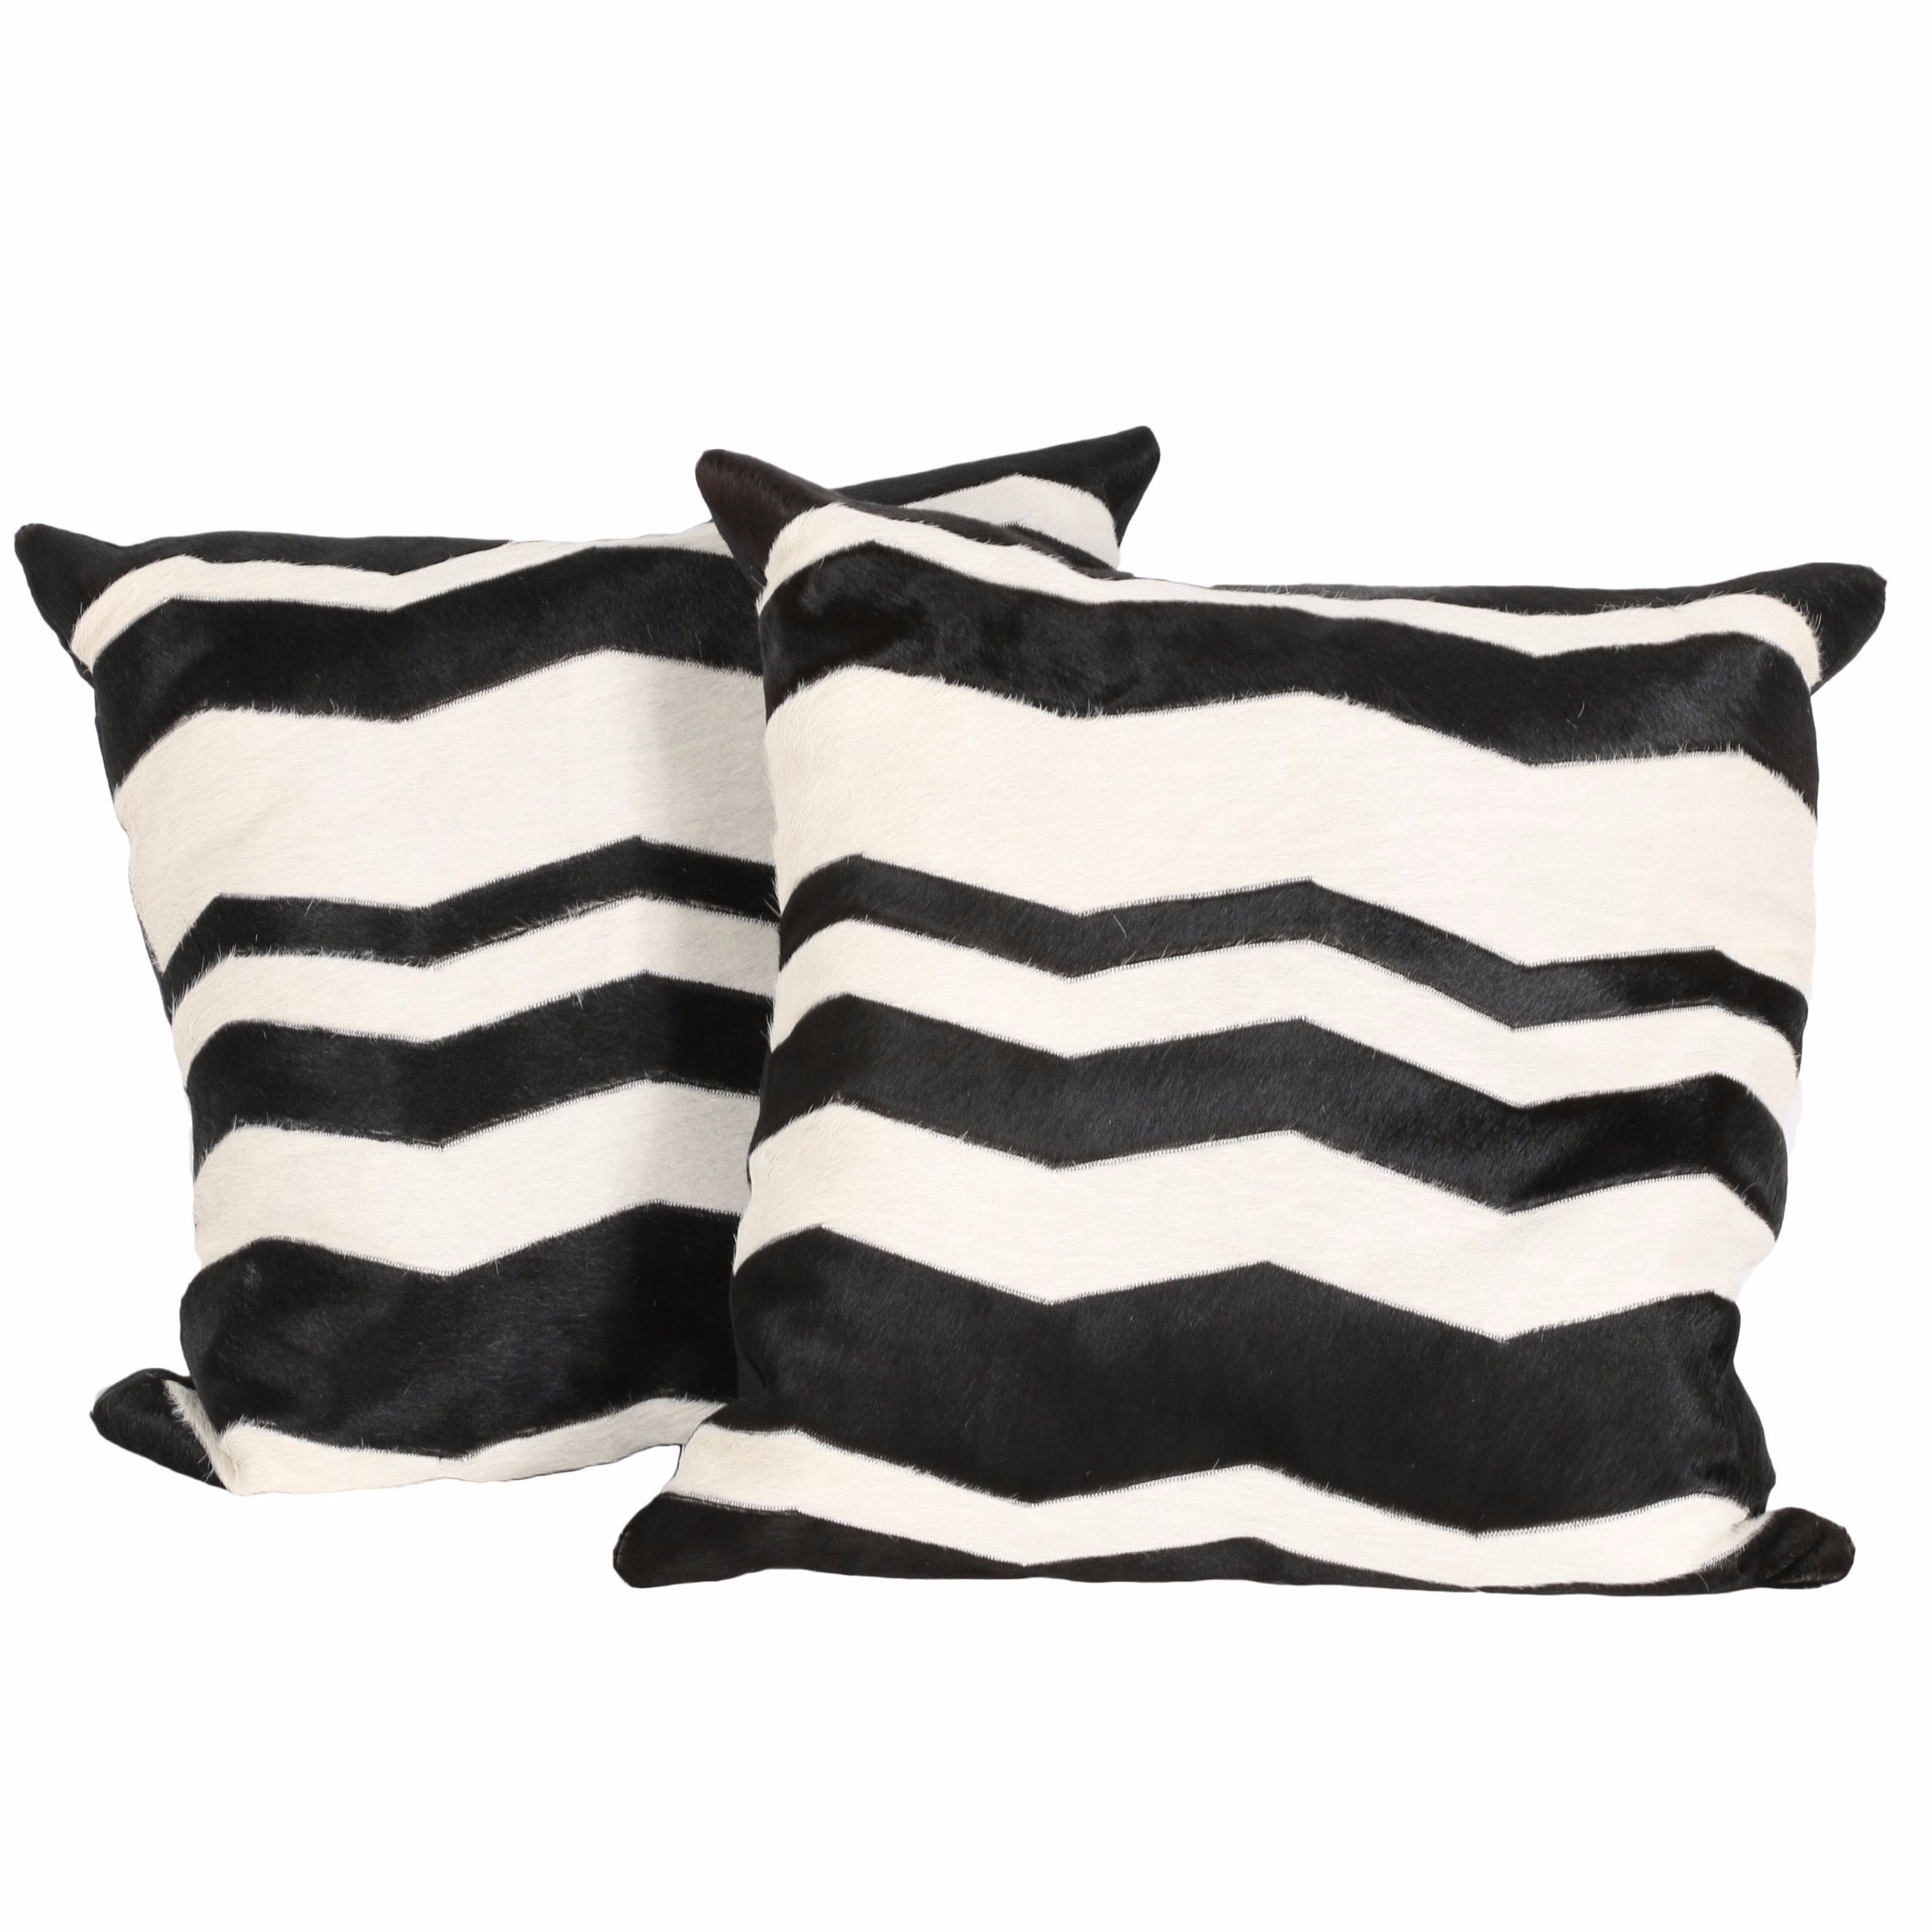 Black and White Chevron Patterned Down and Feather Throw Pillows